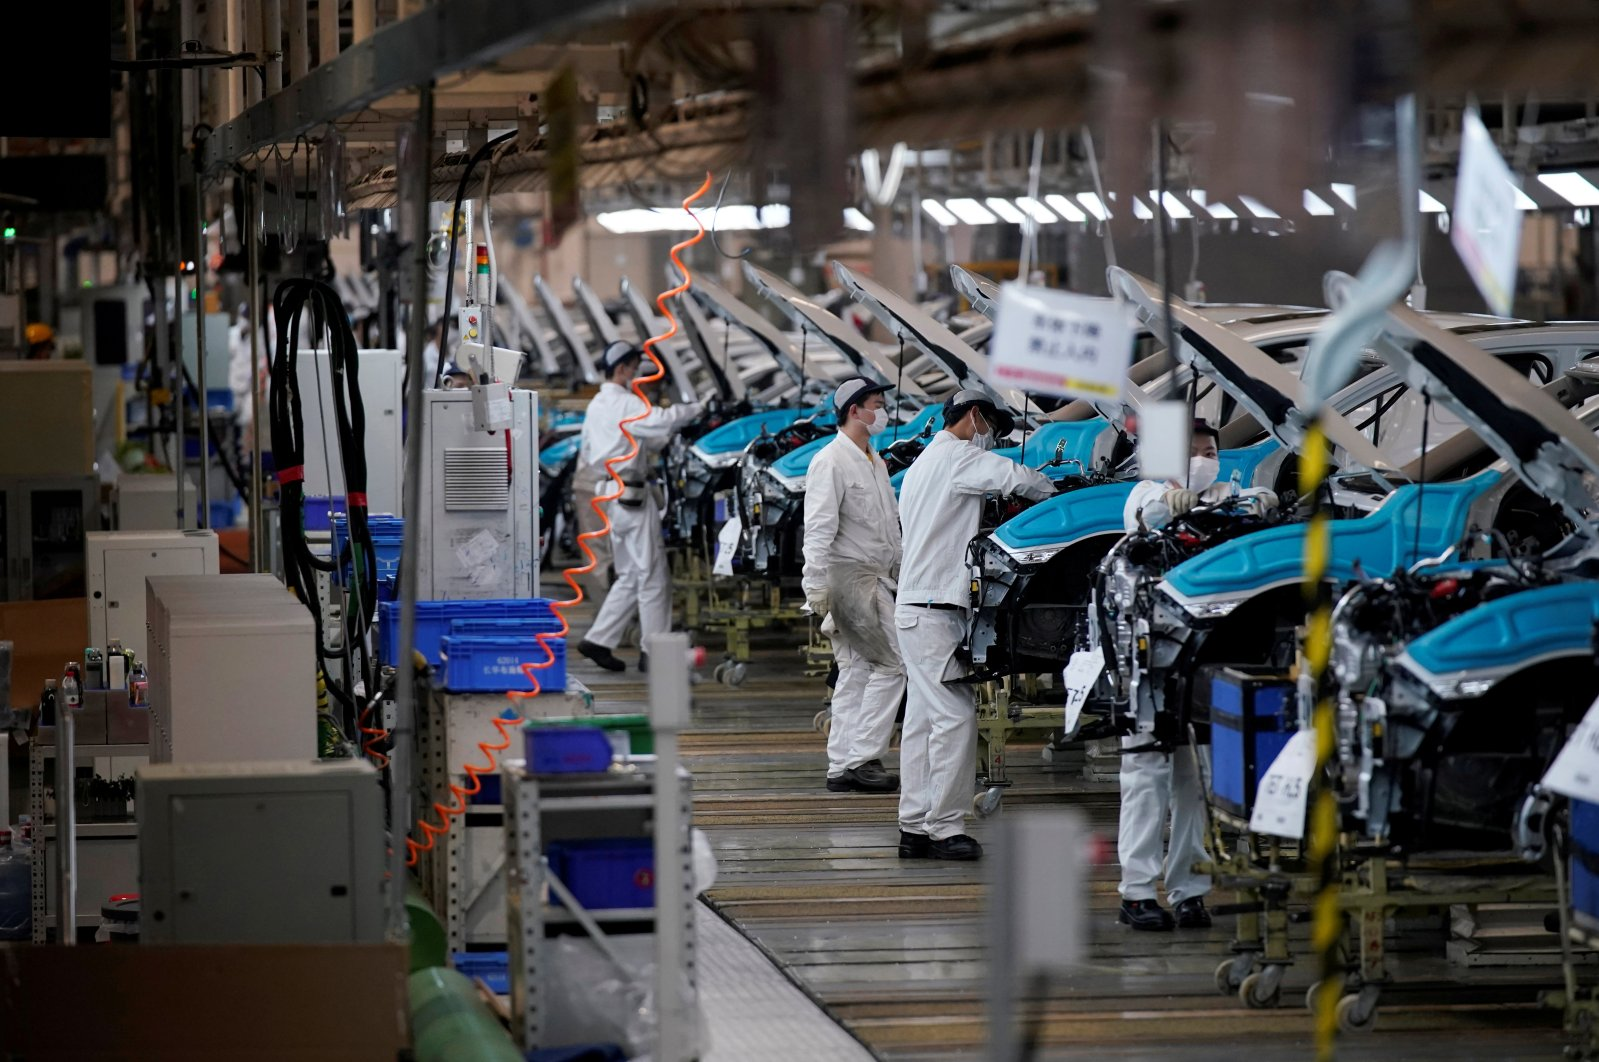 Employees work on a production line inside a Dongfeng Honda factory after lockdown measures in Wuhan, the capital of Hubei province and China's epicenter of the coronavirus outbreak, were further eased, April 8, 2020. (Reuters Photo)